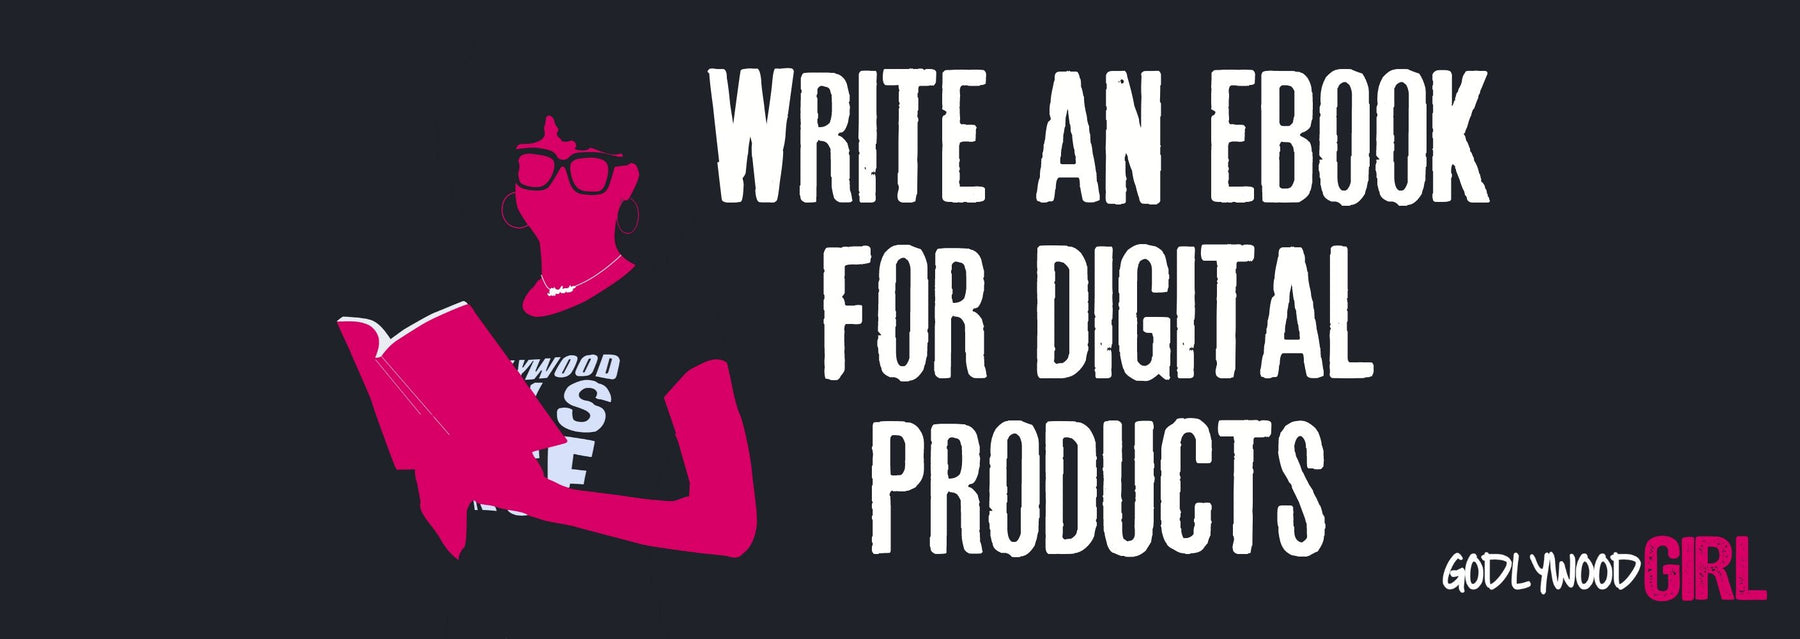 HOW TO WRITE AN EBOOK AND MAKE MONEY WITH DIGITAL PRODUCTS (How to Make Passive Income From Ebooks)